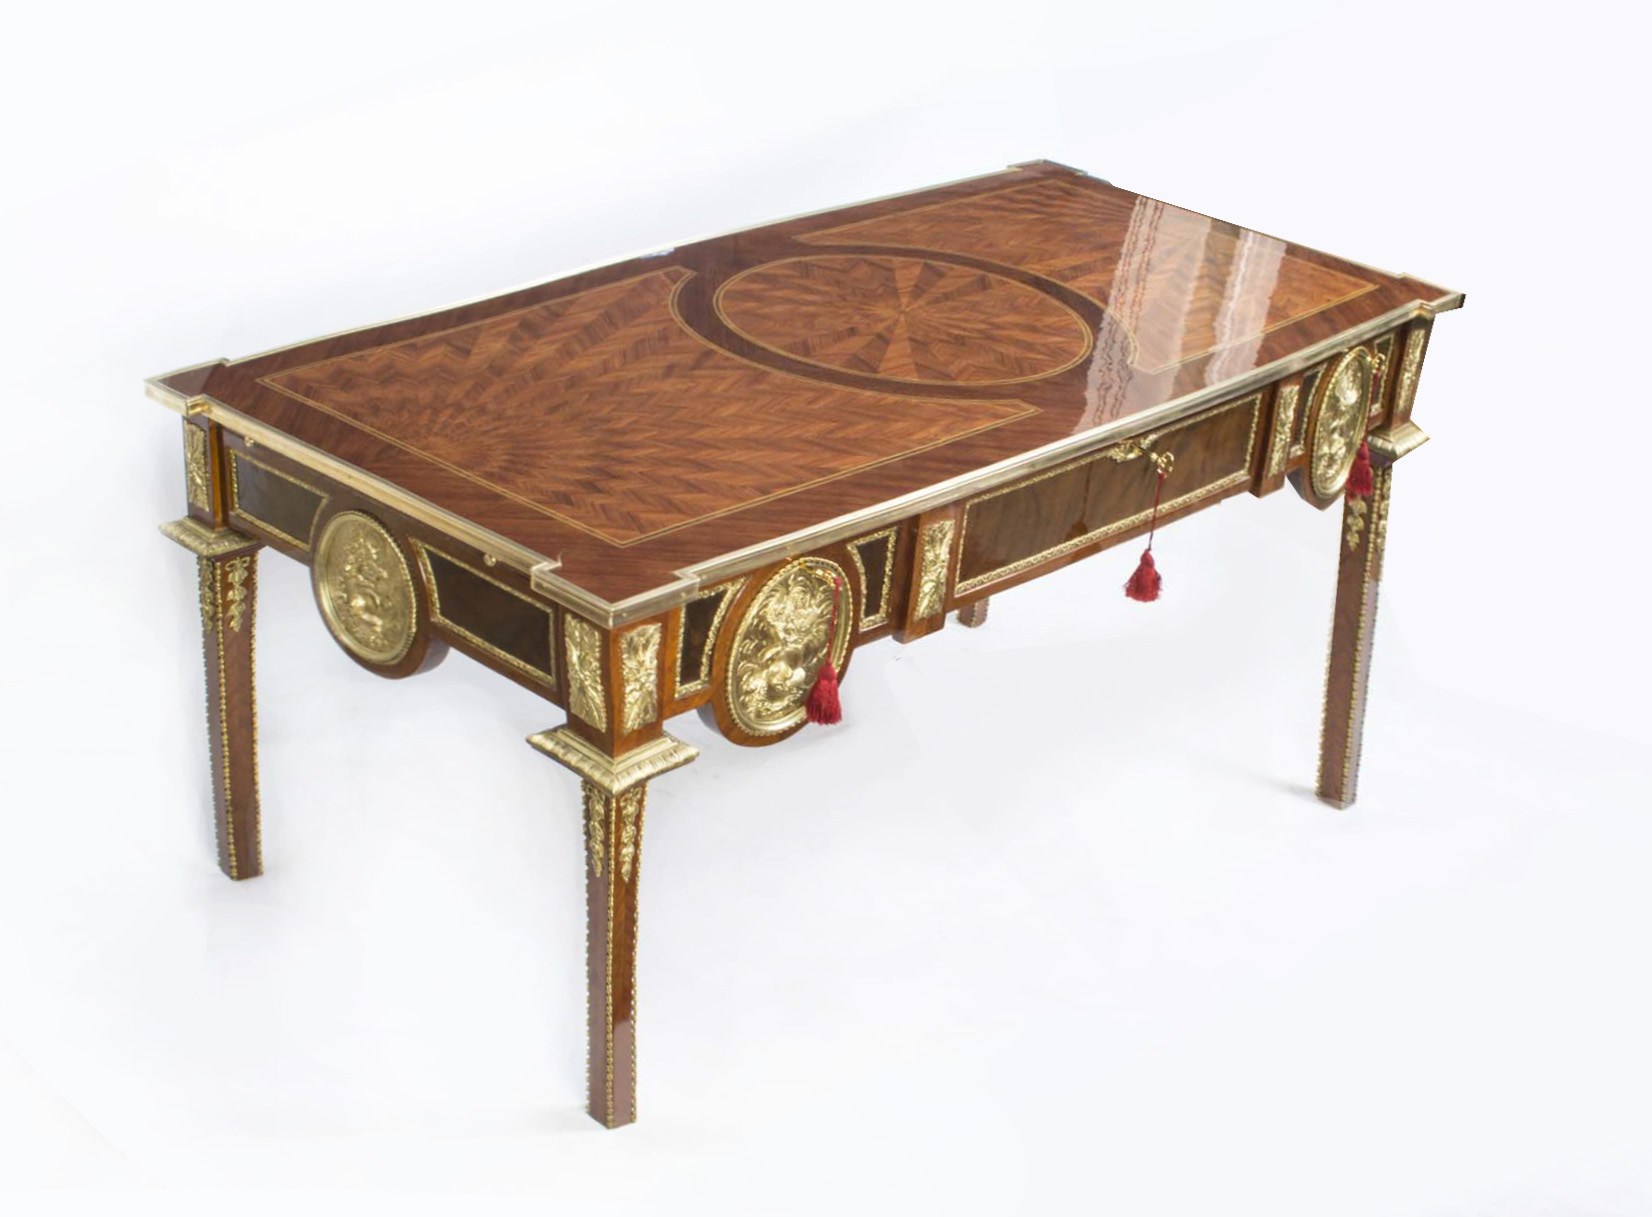 empire style bureau plat writing table ormolu mounts. Black Bedroom Furniture Sets. Home Design Ideas